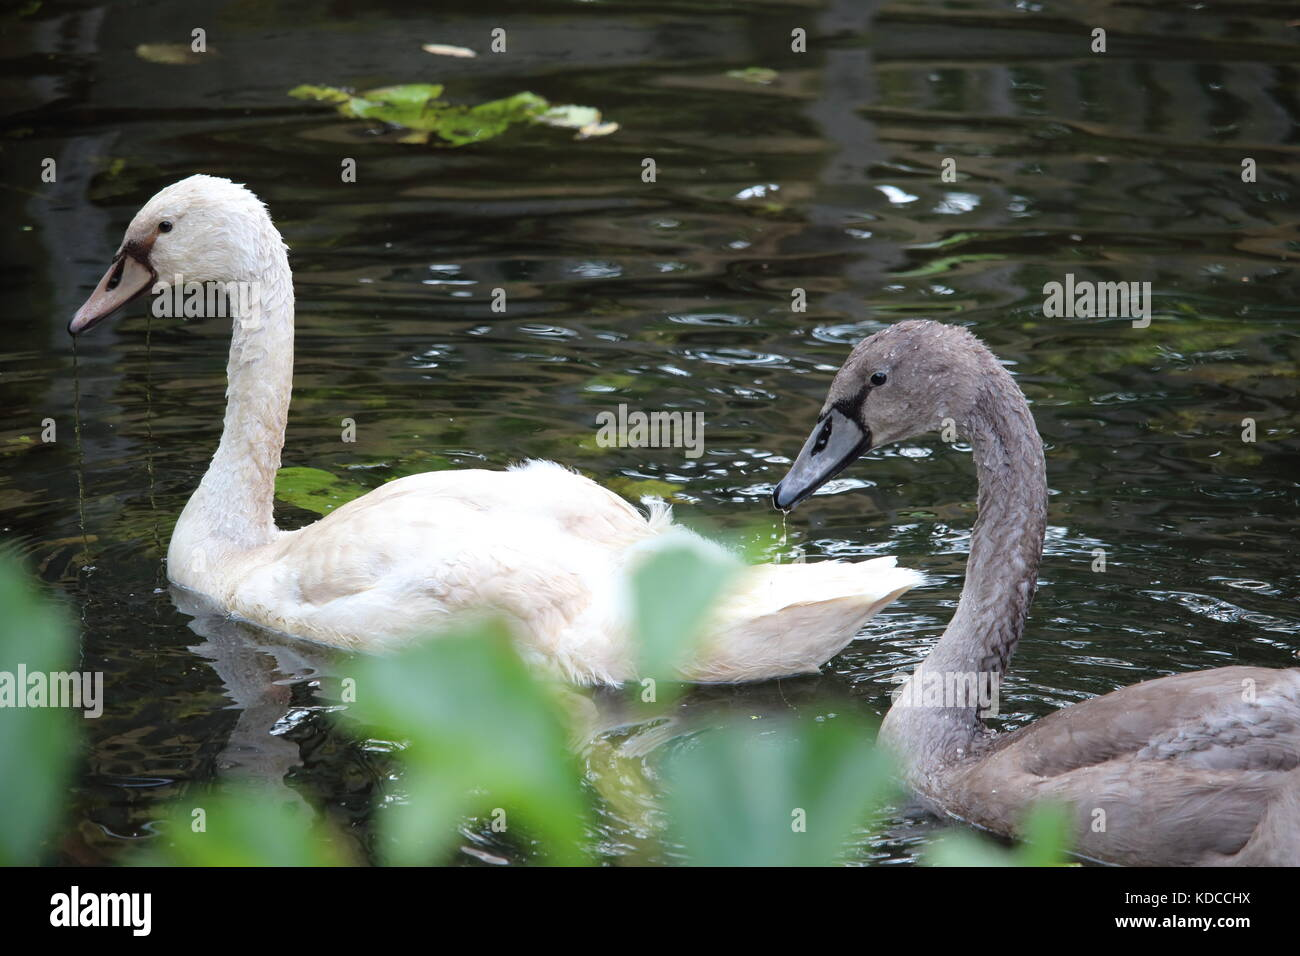 Two swans on a pond Stock Photo